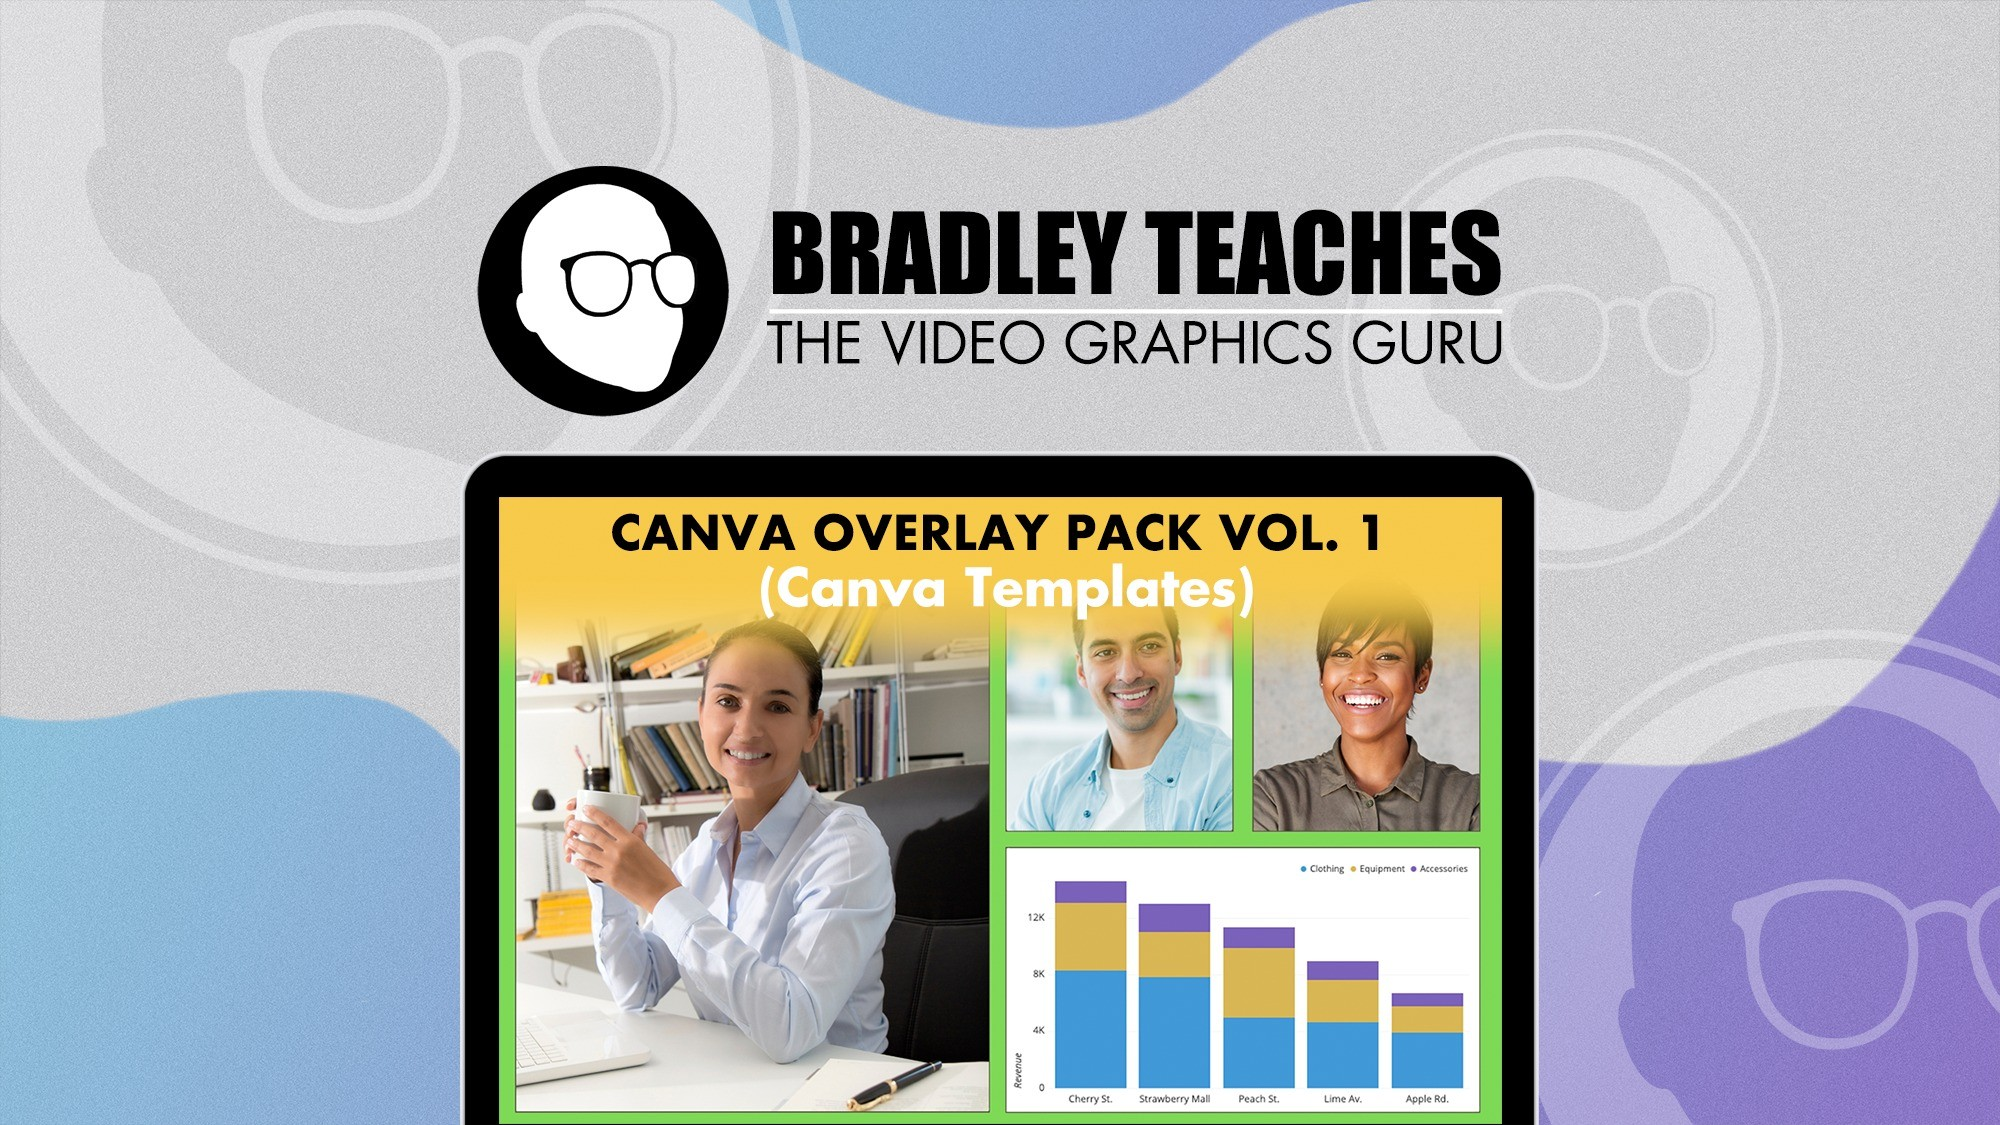 AppSumo Deal for Overlay Pack- Canva Templates Vol. 1